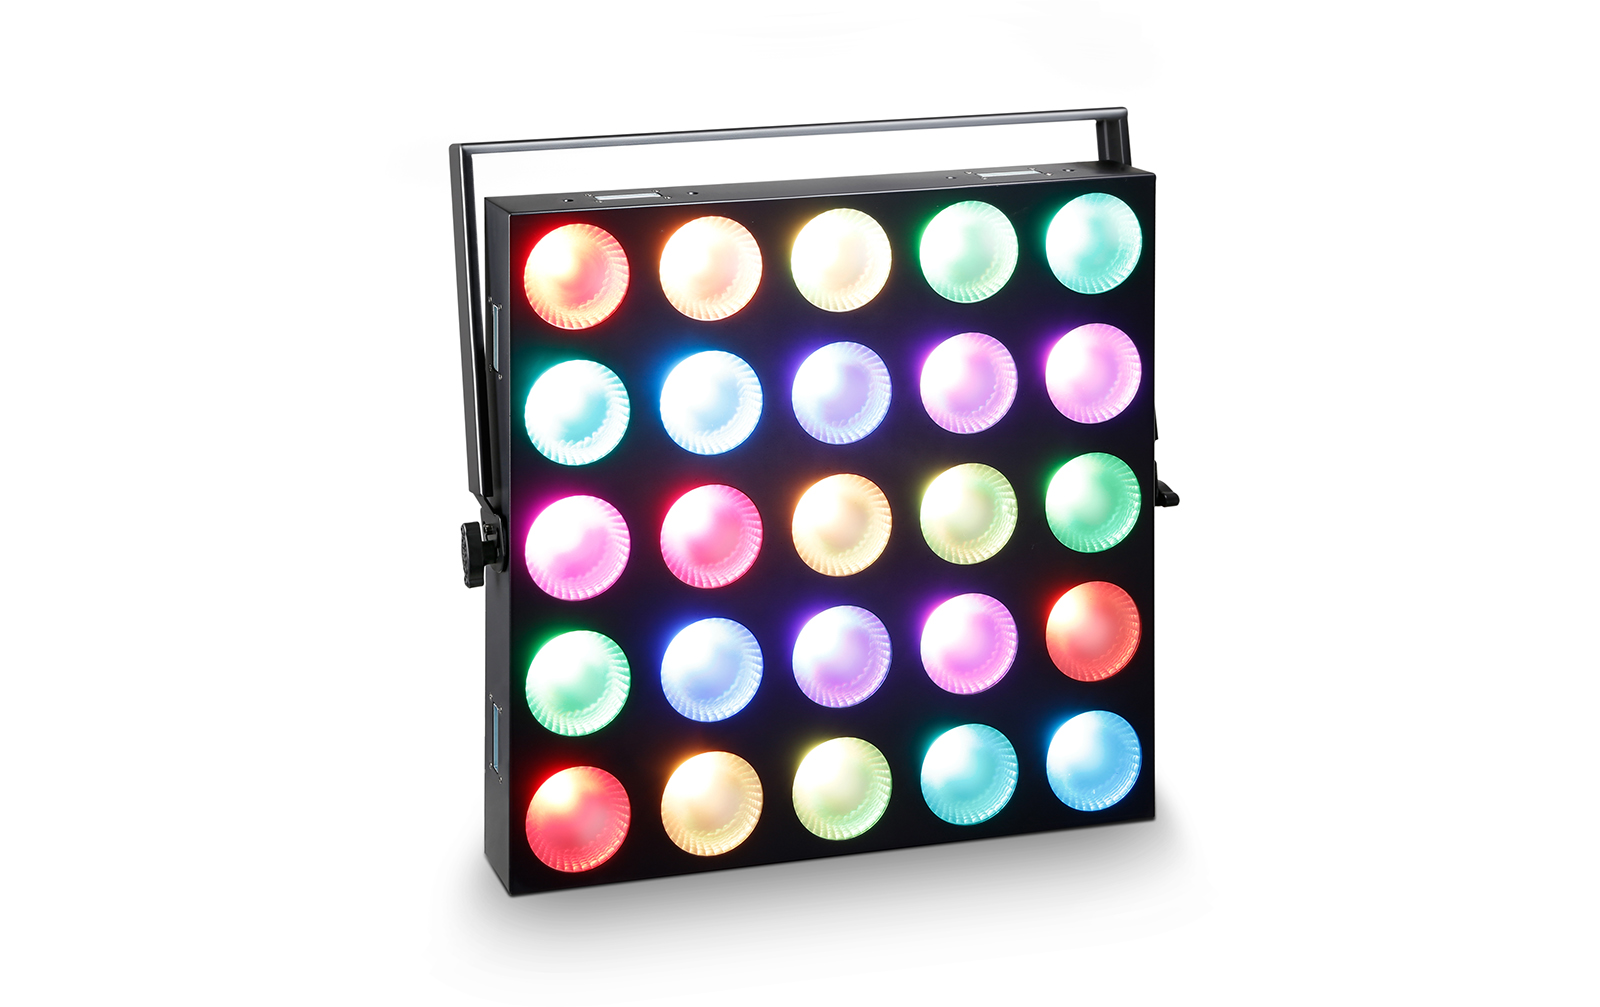 cameo-matrix-panel-10-w-rgb-5-x-5-rgb-led-matrix-panel-mit-single-pixel-control